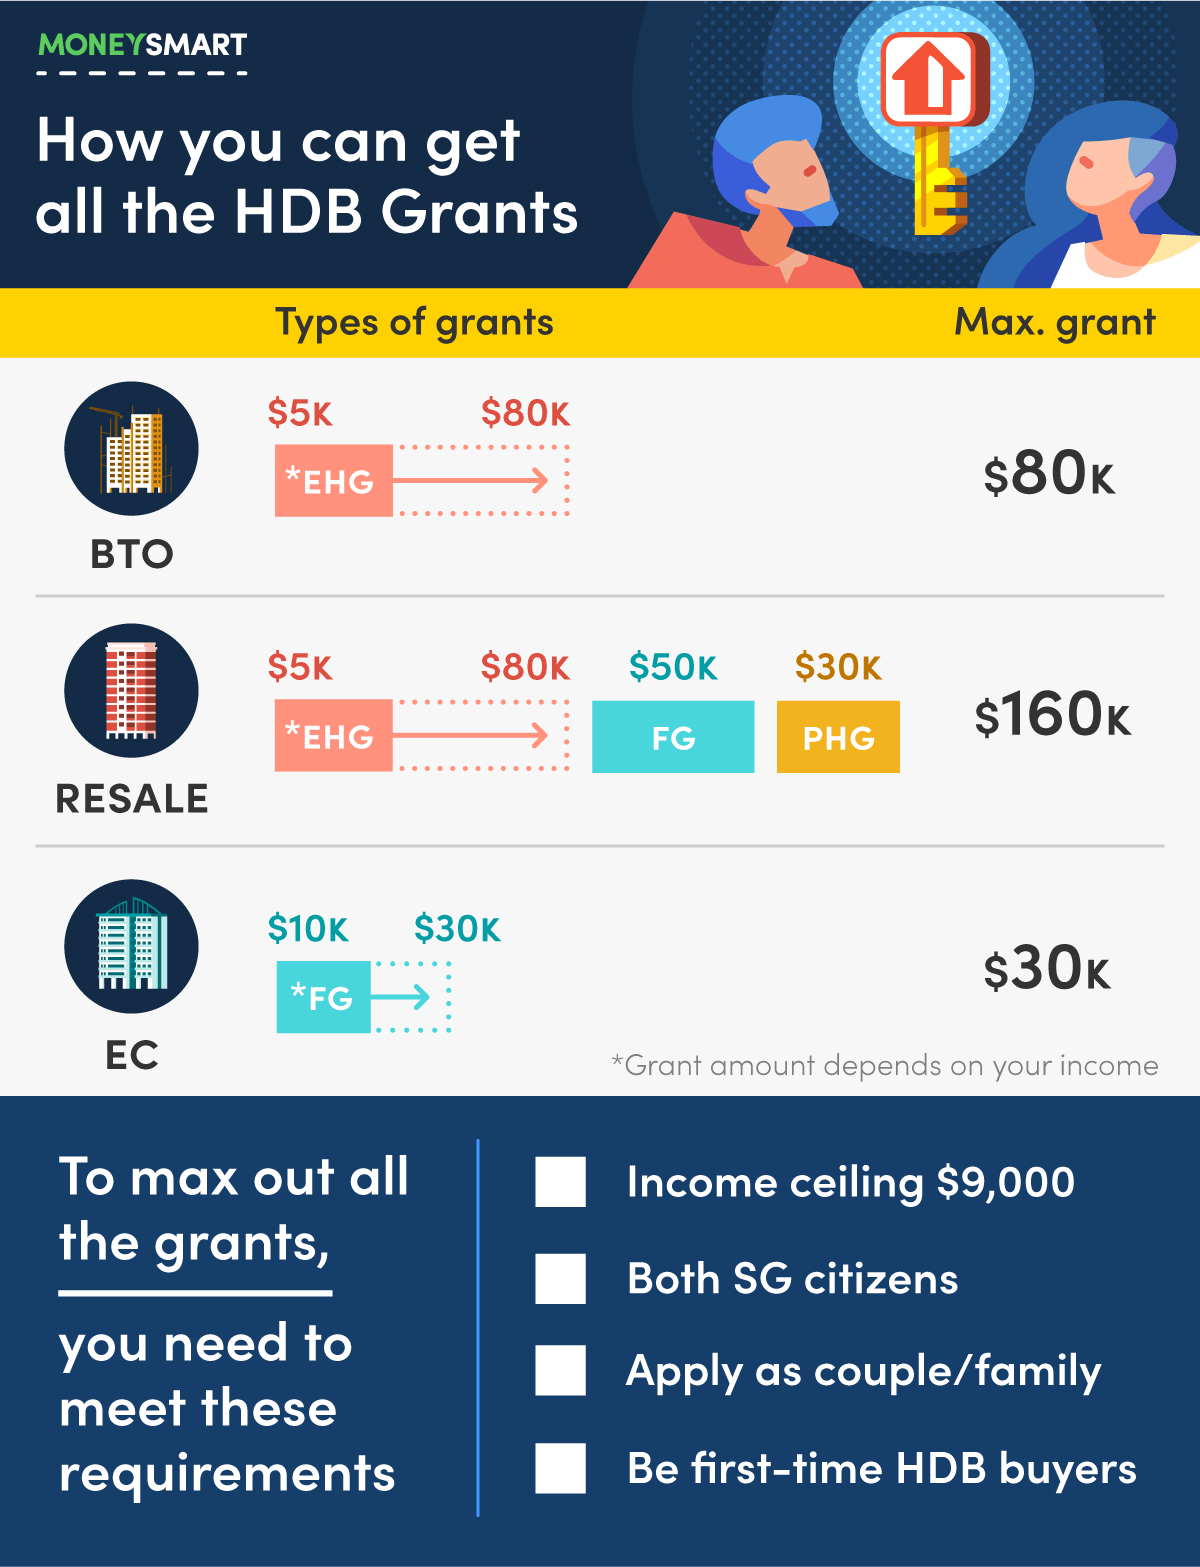 how to get all the hdb grants in Singapore